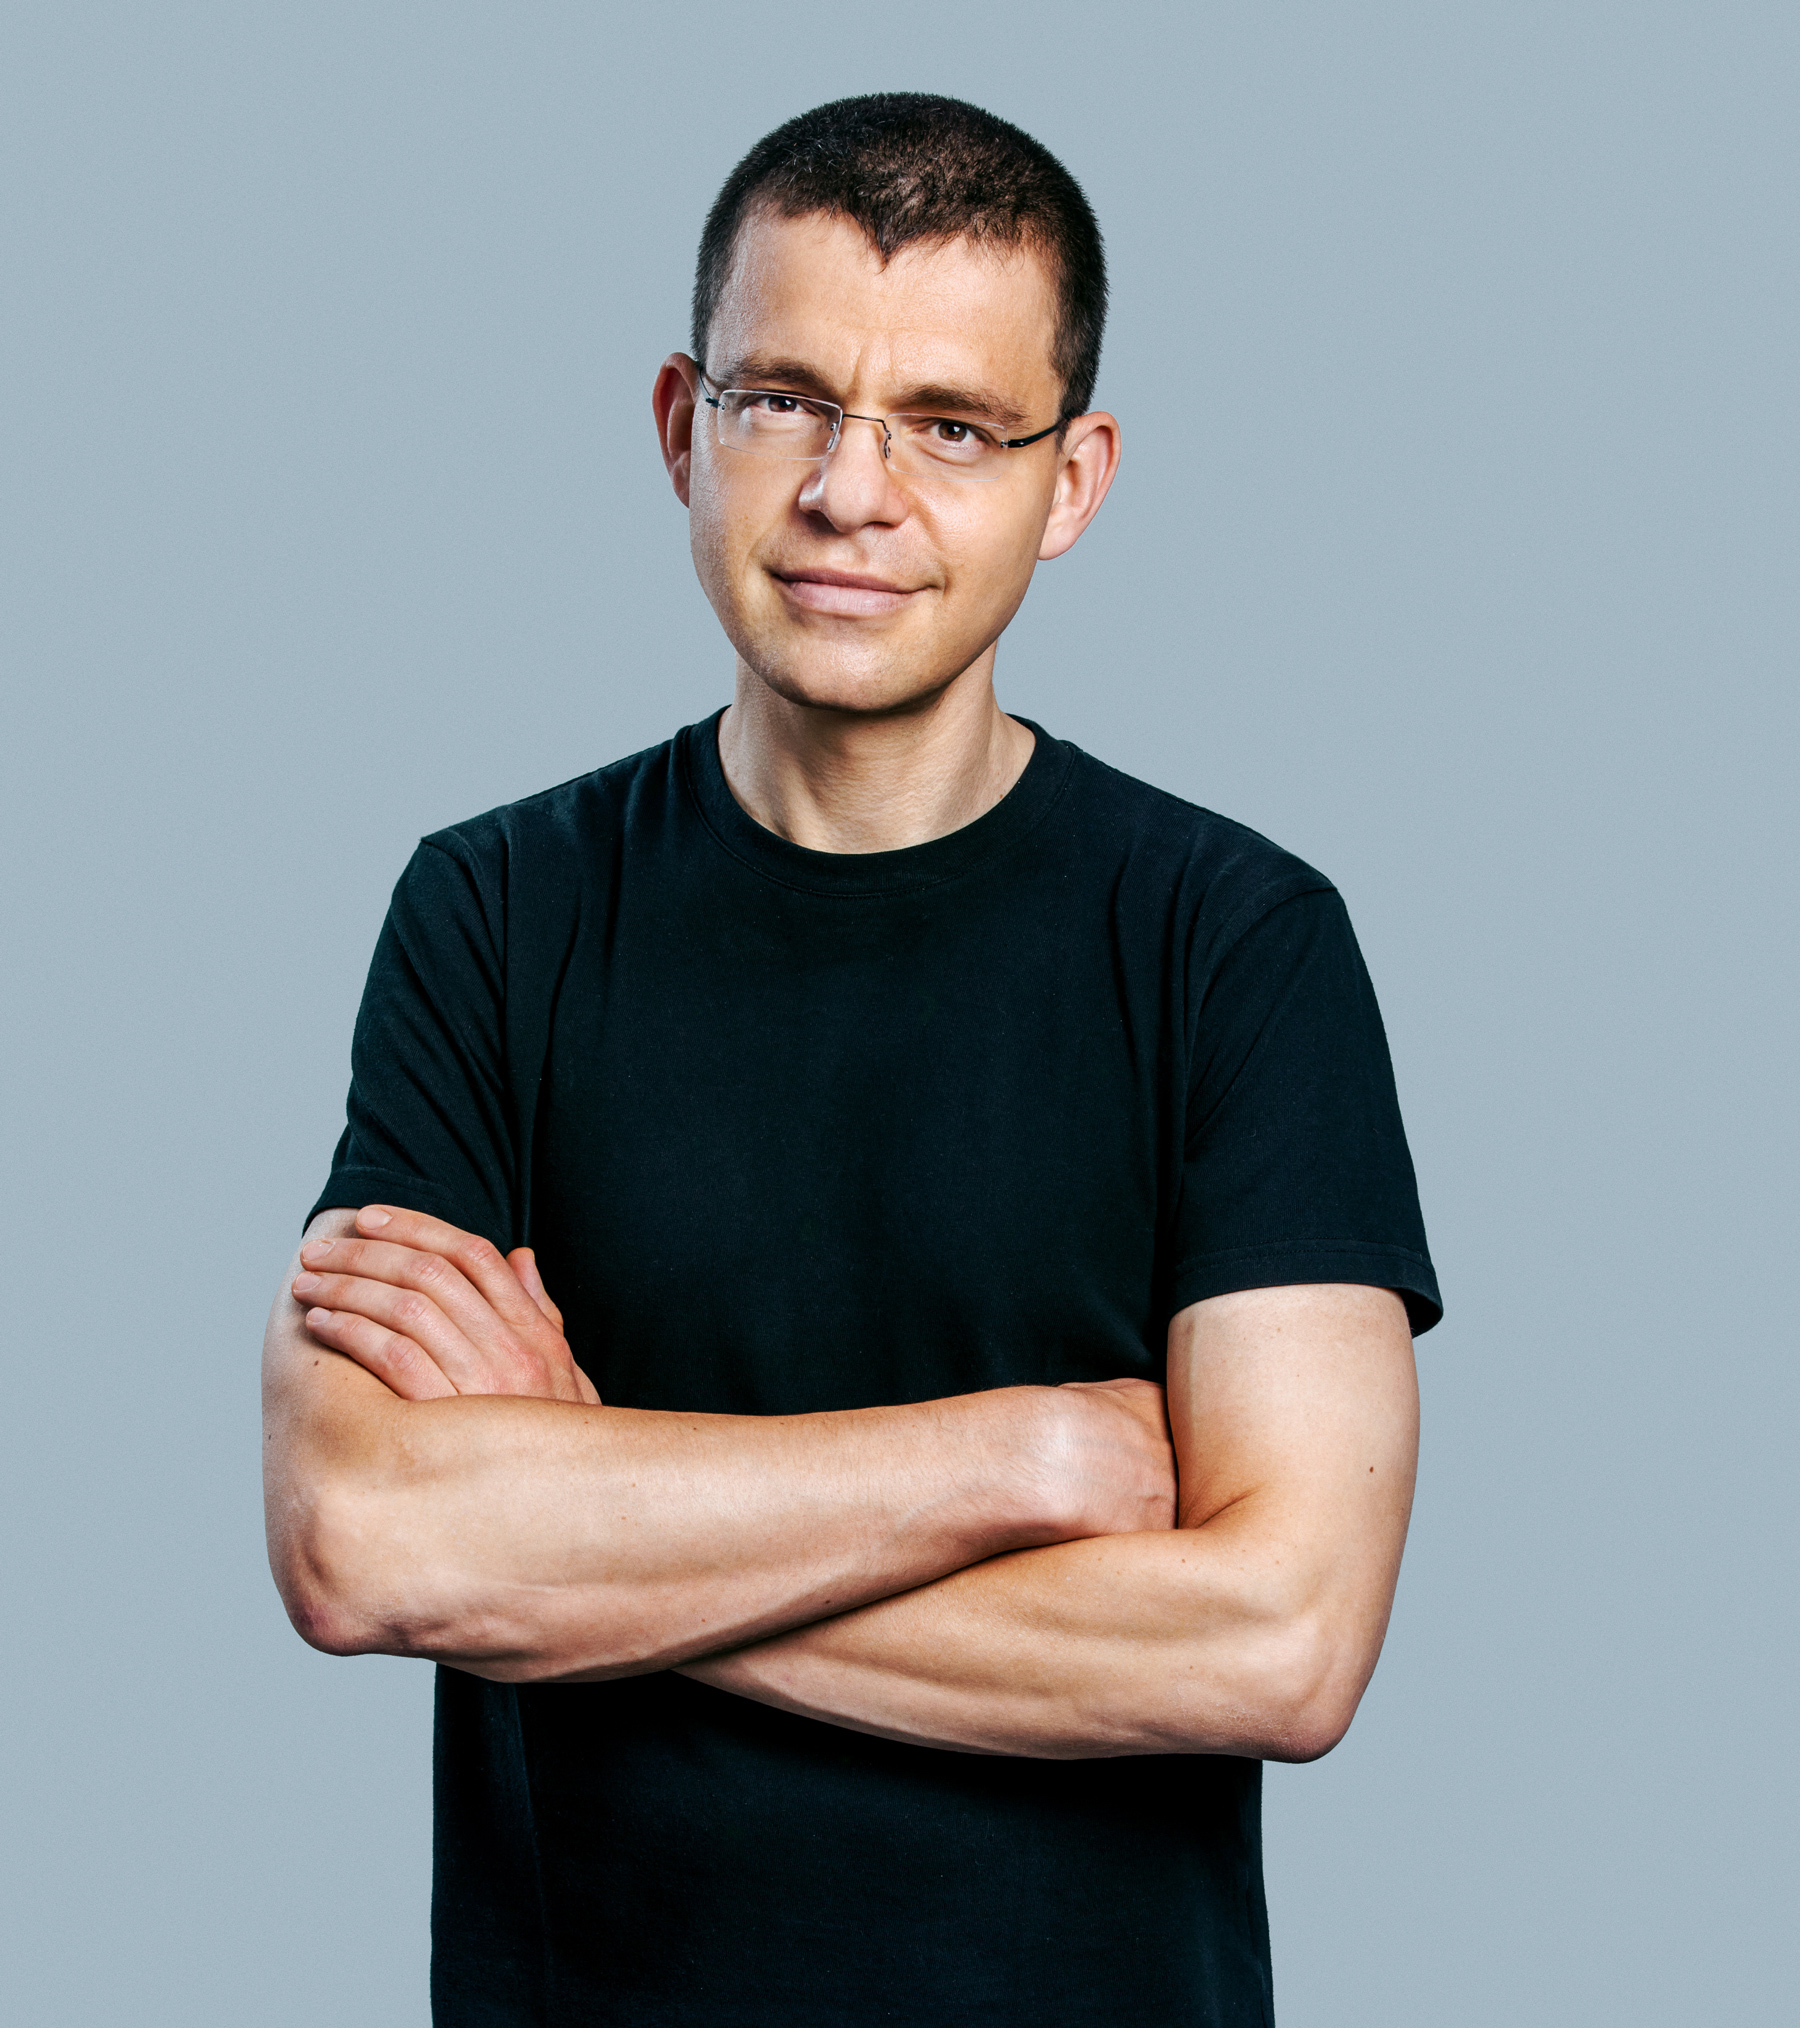 MAX LEVCHIN, CO-FOUNDER AND CEO OF AFFIRM